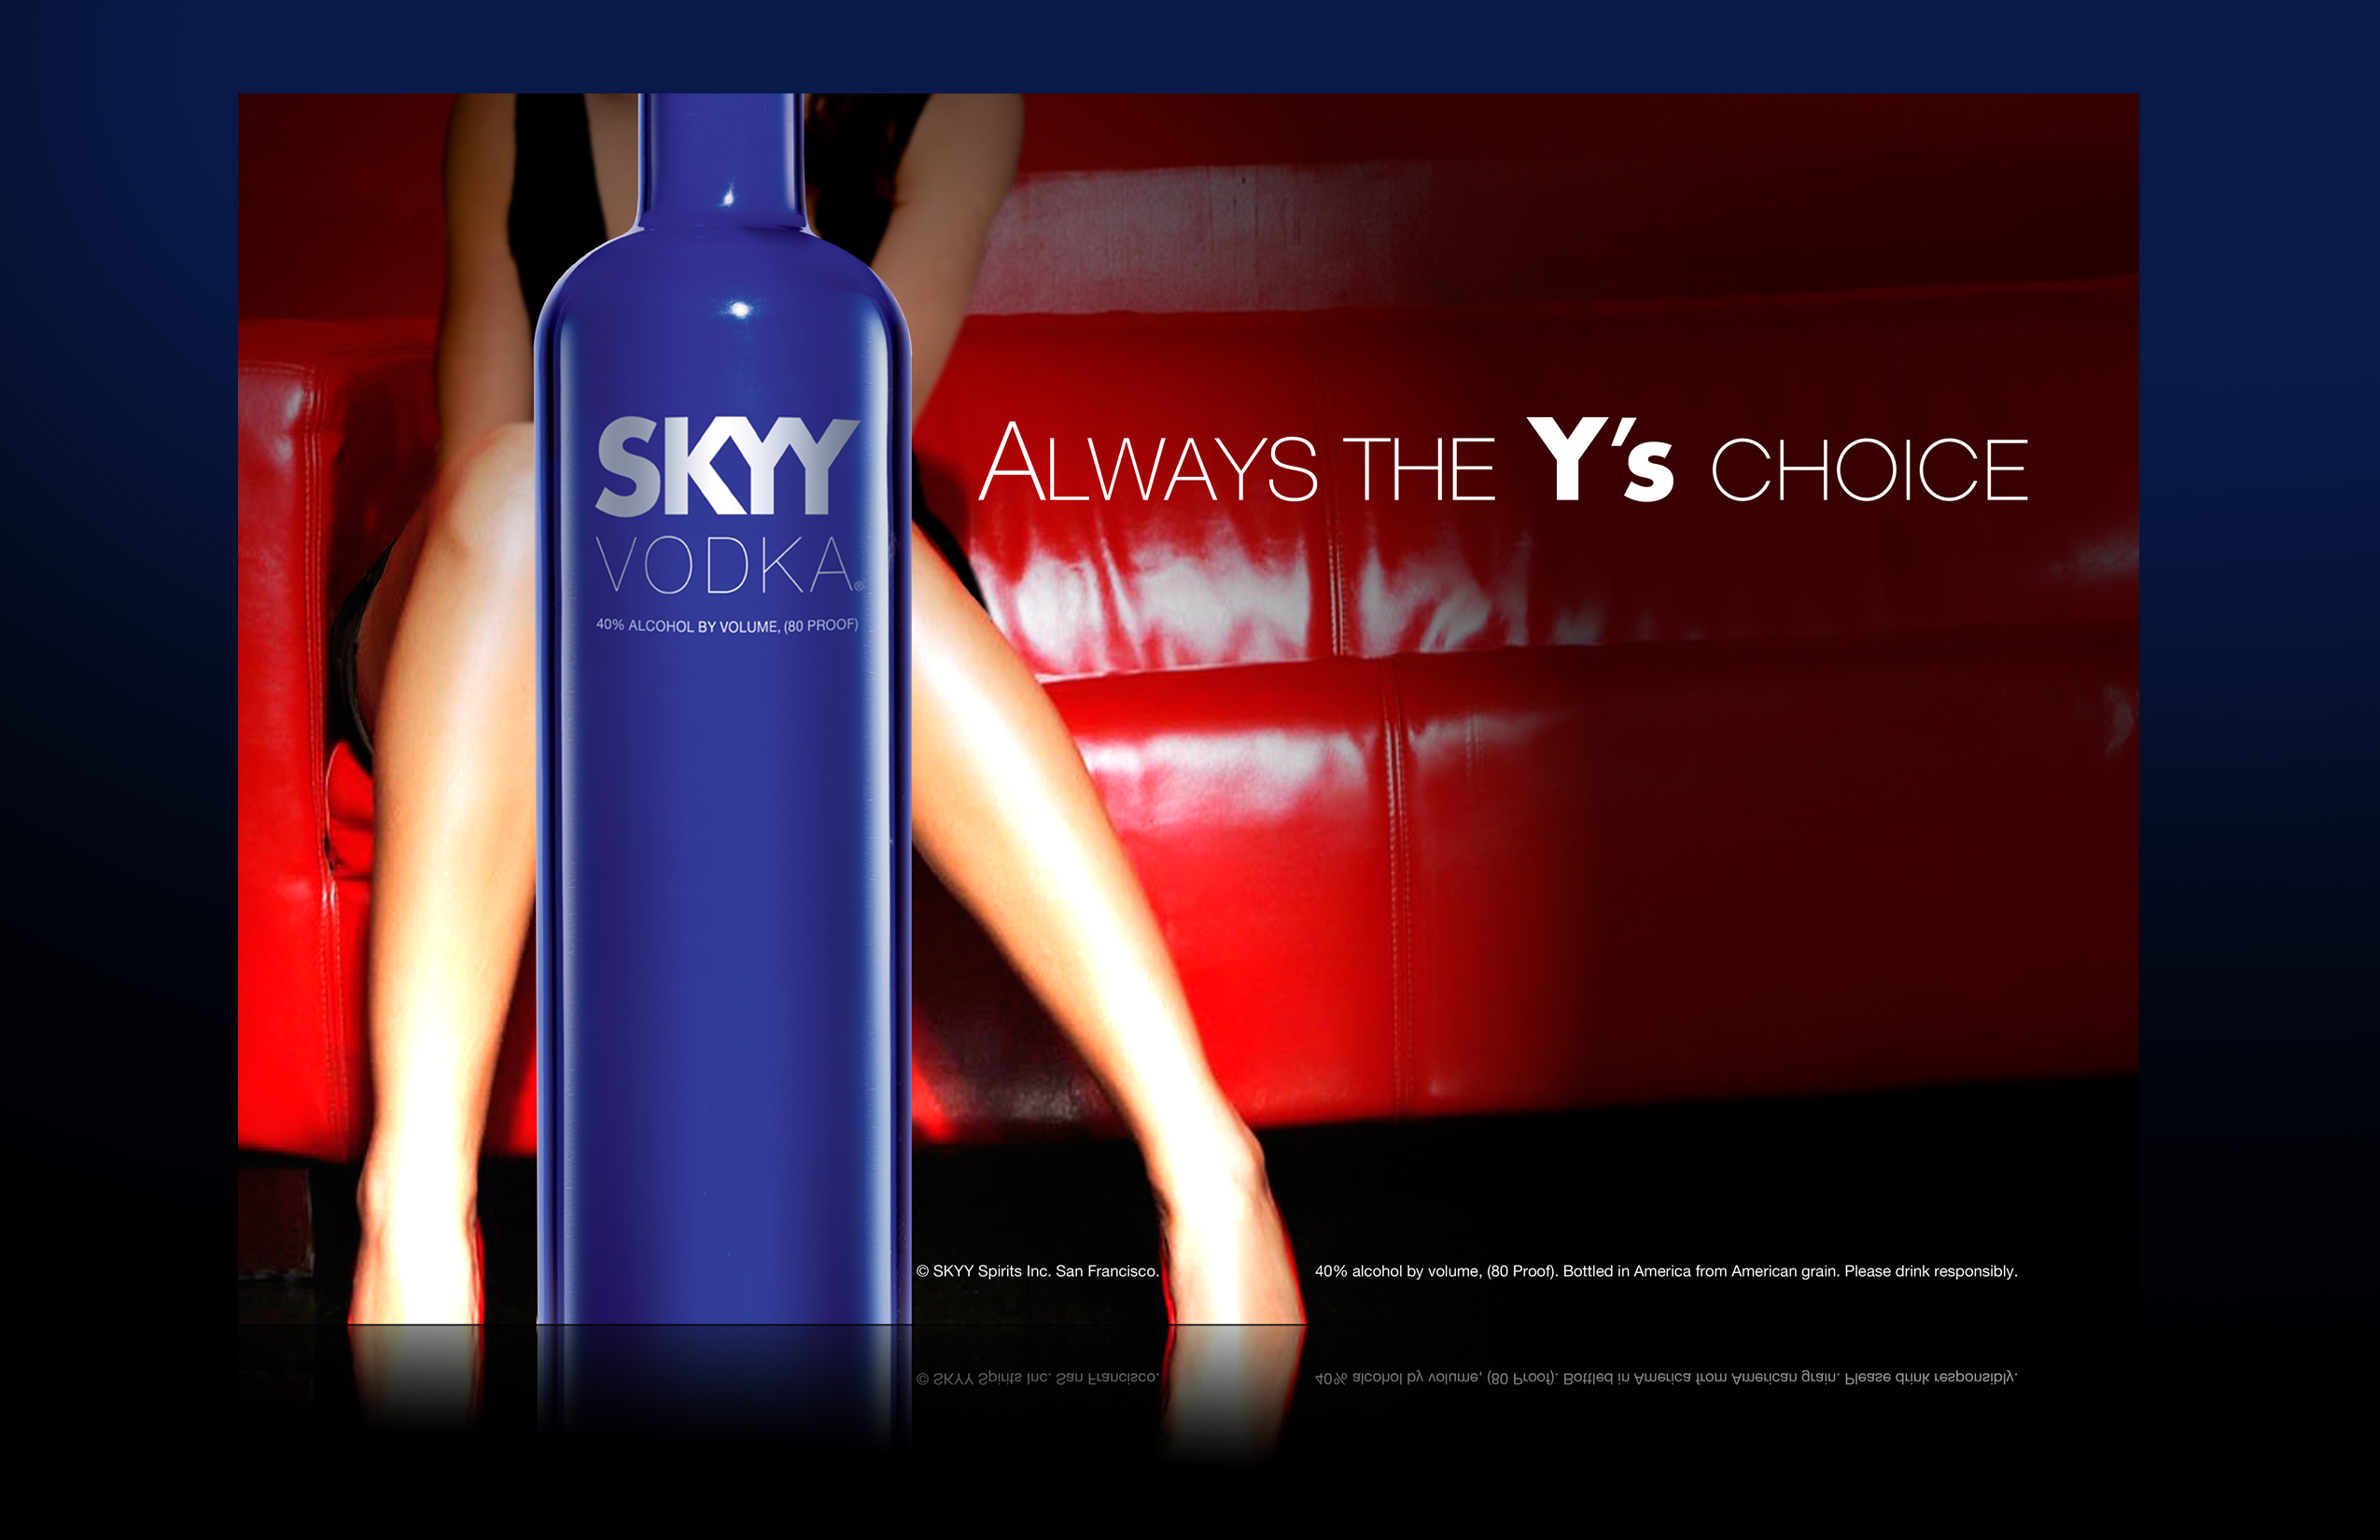 repesentation in skyy vodka advertising The clear message relative size helps represent is that essay on vodka ad ryan thouin and one of the most important reasons is advertising moreover, skyy.